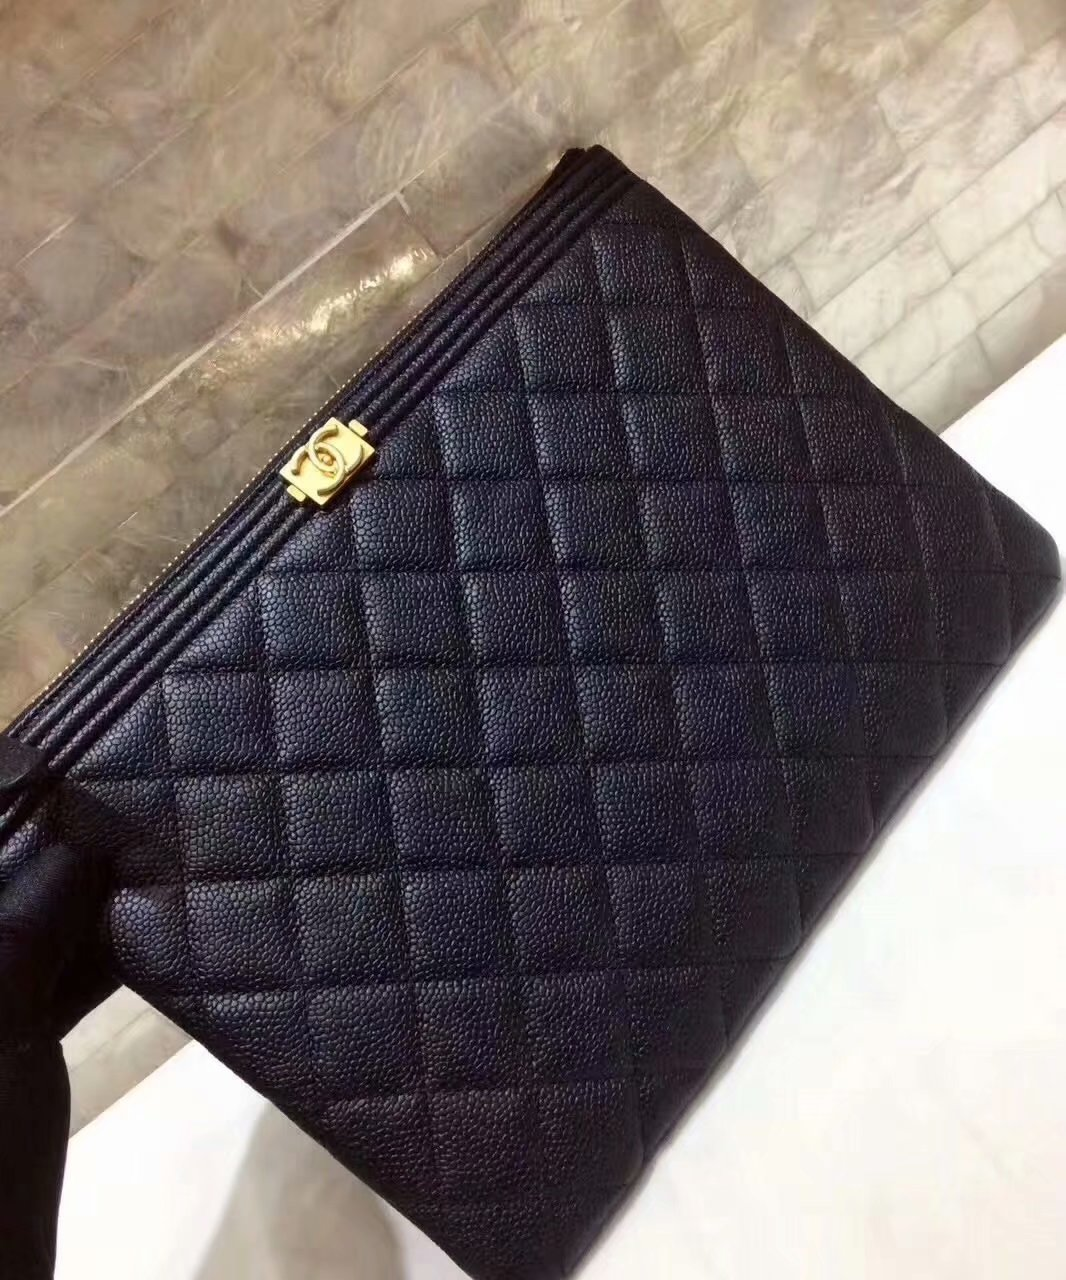 Cheapest BOY CHANEL Pouch Grained Calfskin Gold-Tone Metal Black